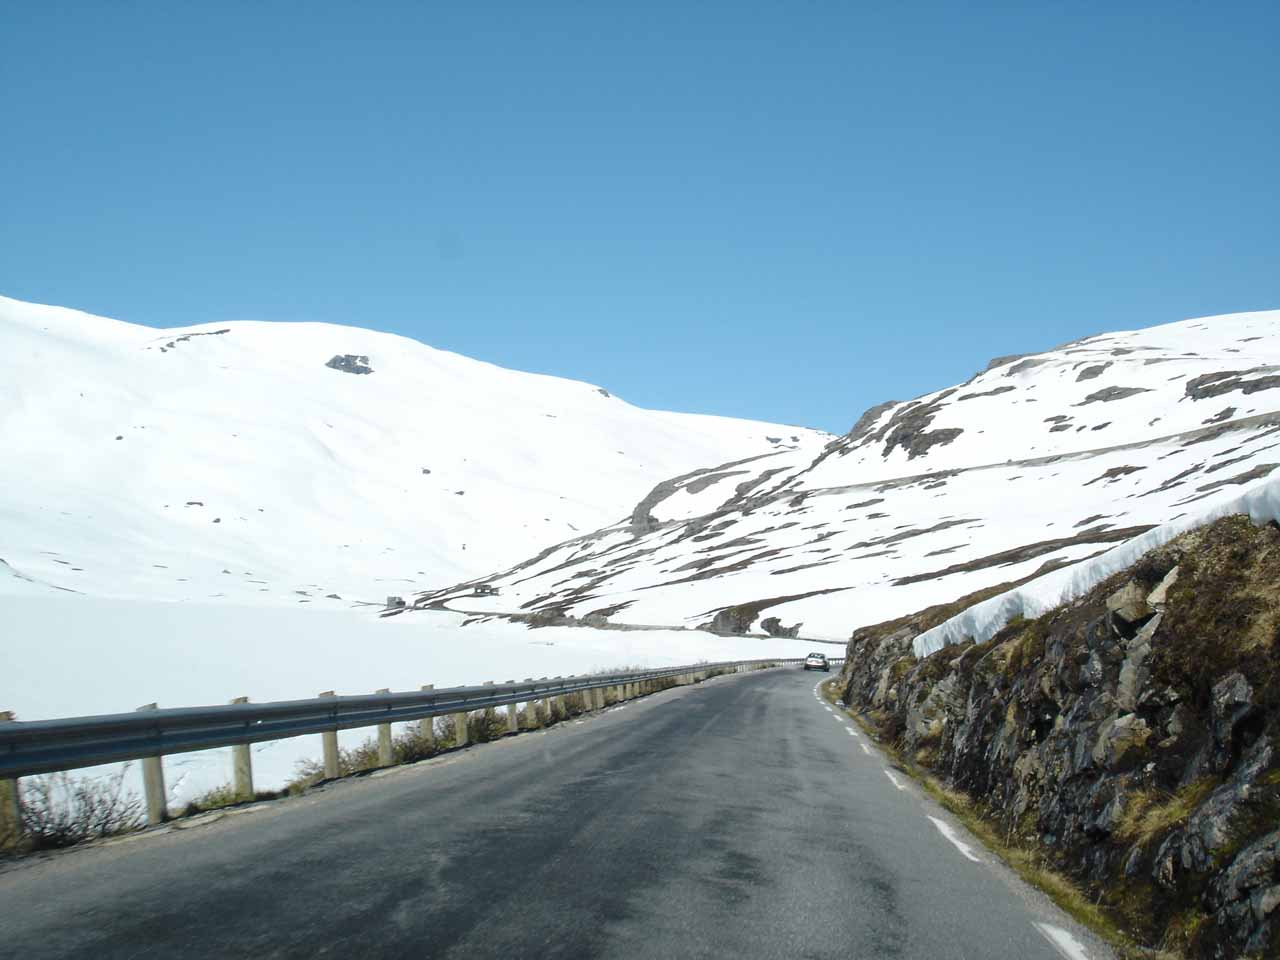 Driving amongst the snow in the mountainous Route 63